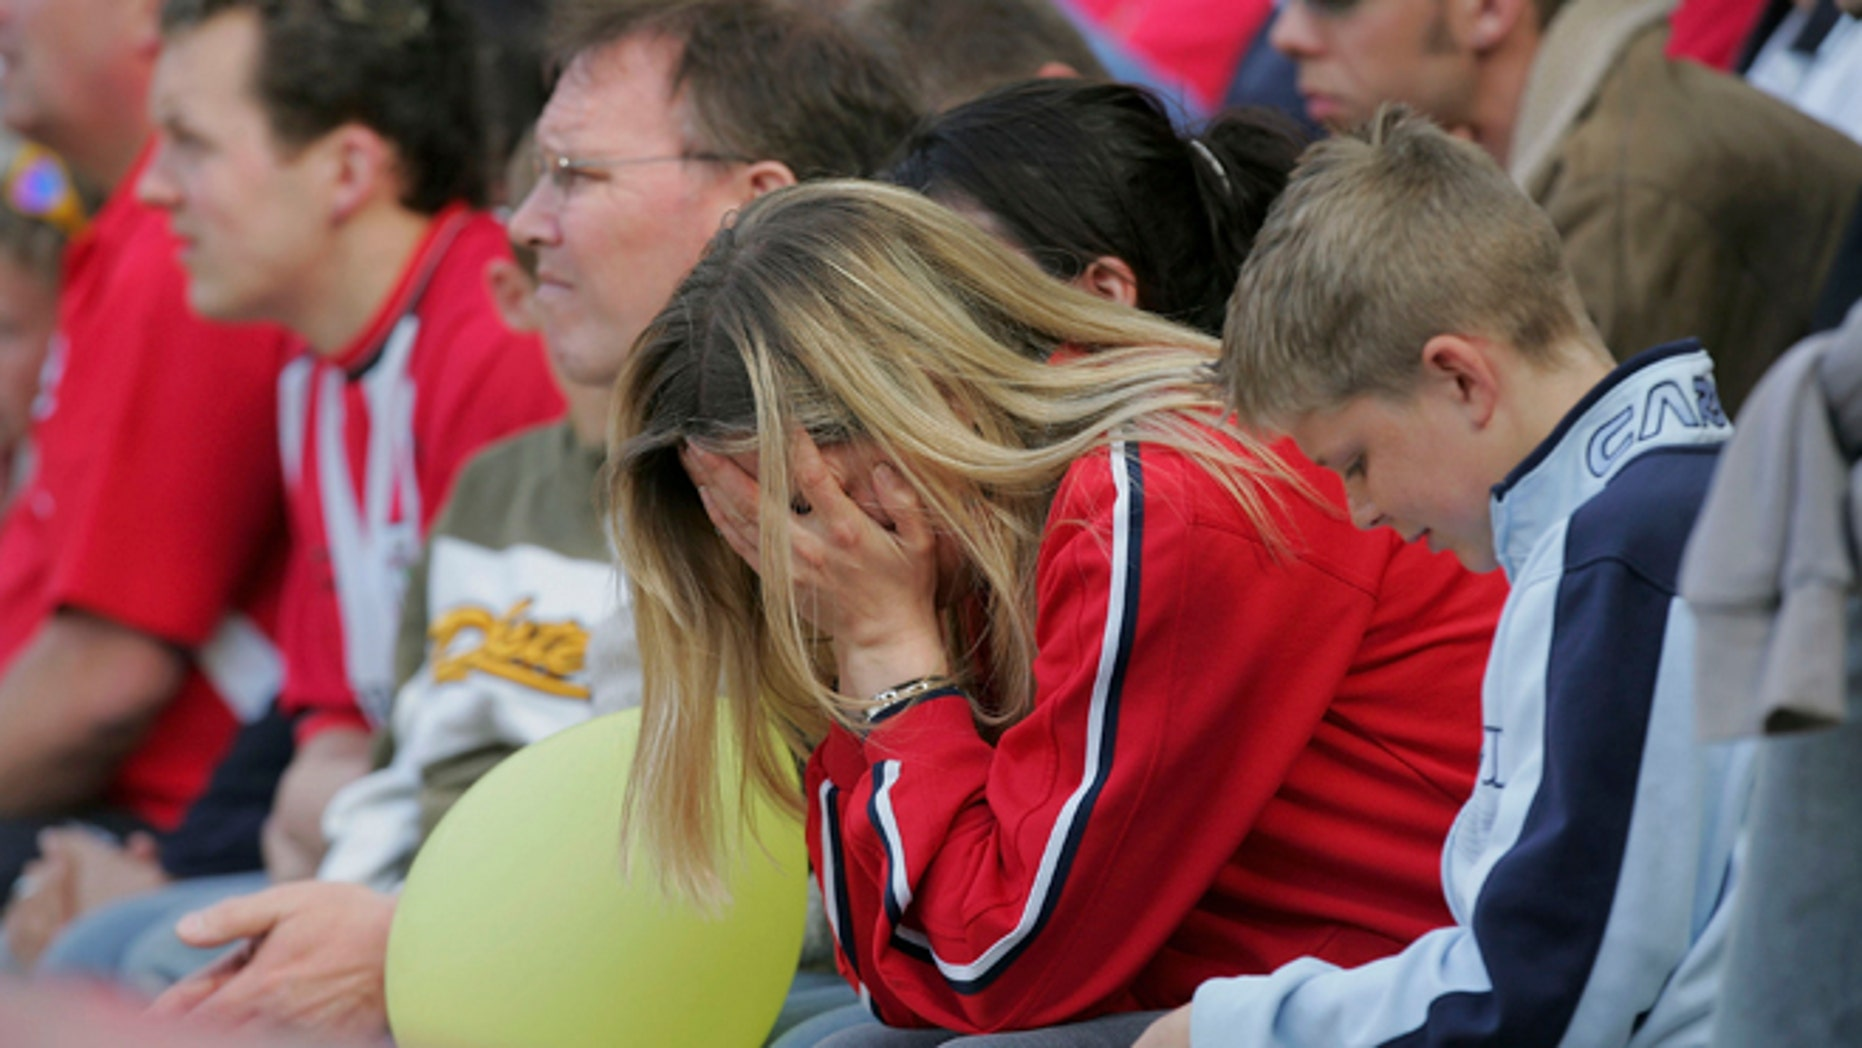 A distraught Southampton fan holds her head. Soccer fans in England are being told that a departure from the European Union will lower the quality of play in the Premier League. (Photo by Mike Hewitt/Getty Images)